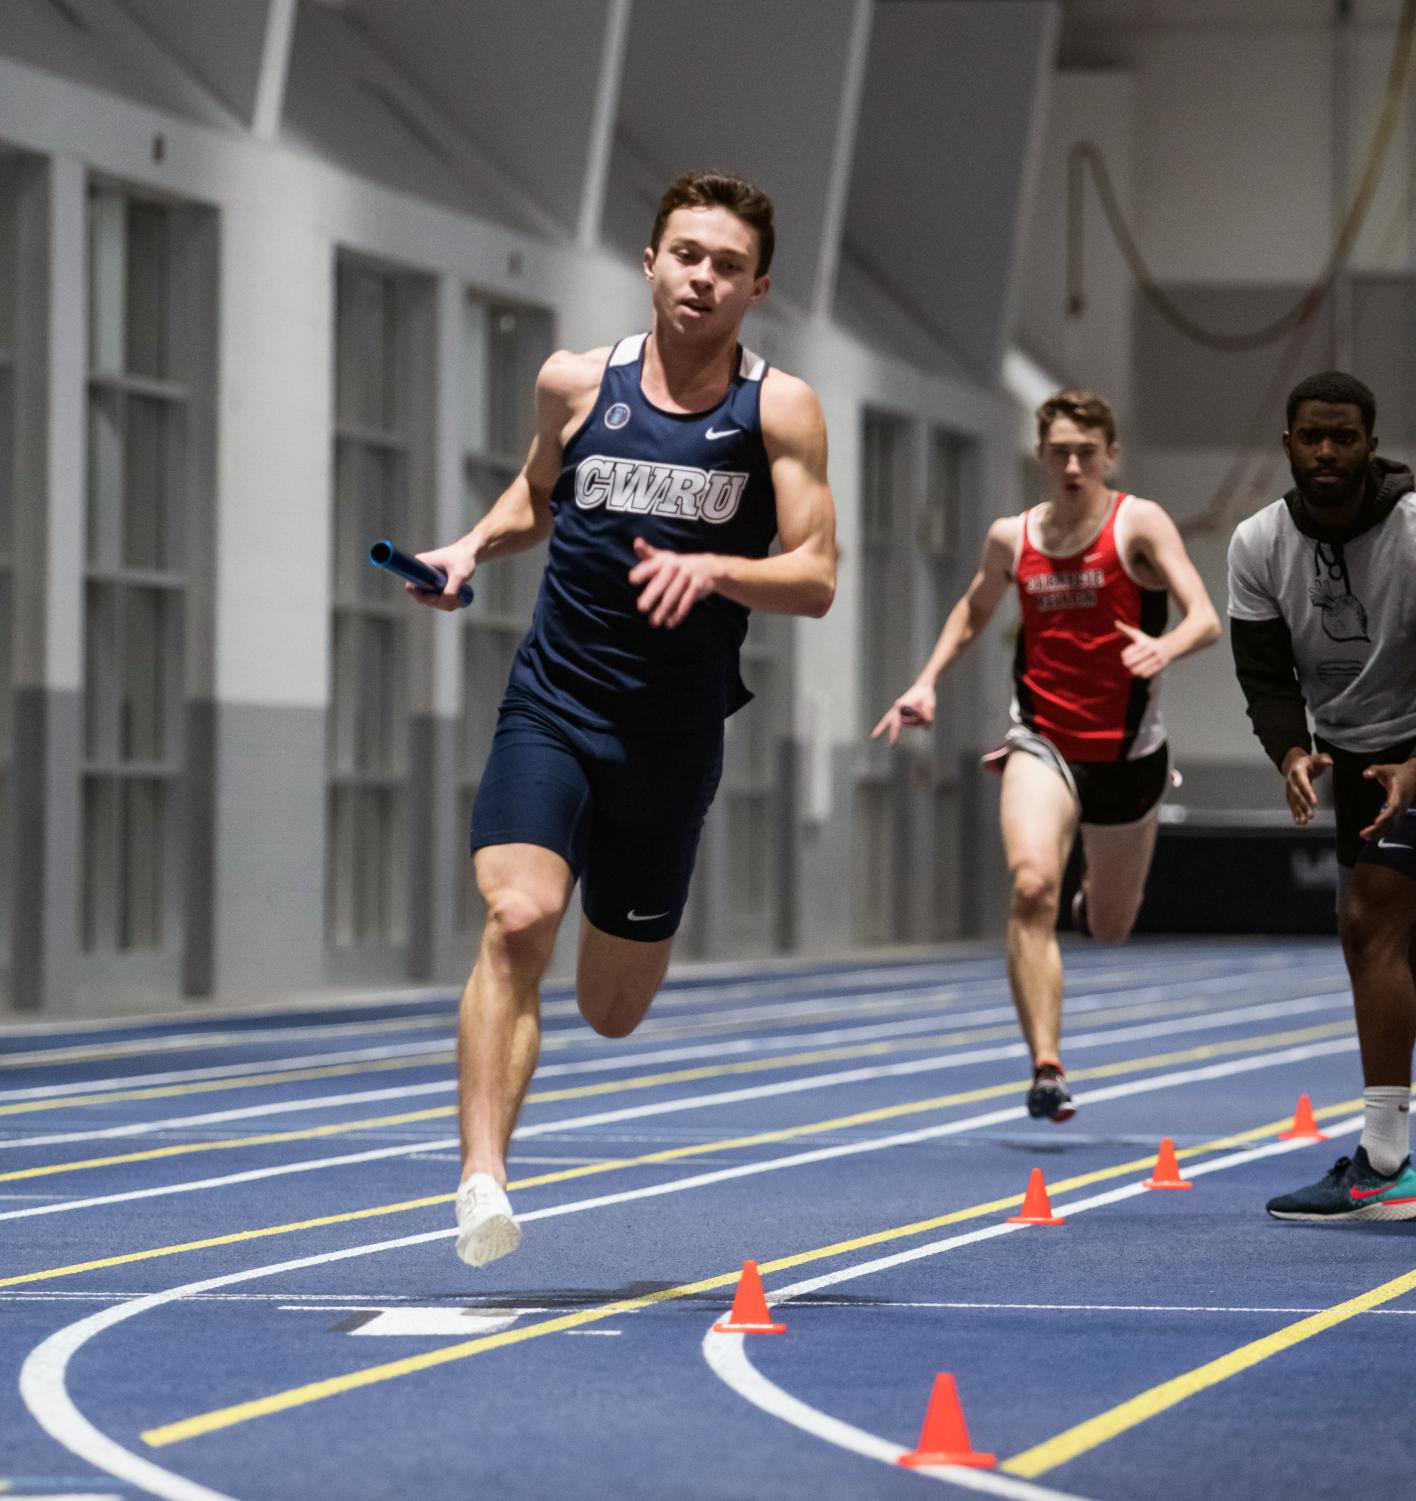 Third-year Michael Hradesky competes in the men's 4x400-meter relay, which placed fifth at the UAA Championships. Hradesky will compete in the 800-meter run this weekend at the ONU Polar Bear Last Chance Meet.